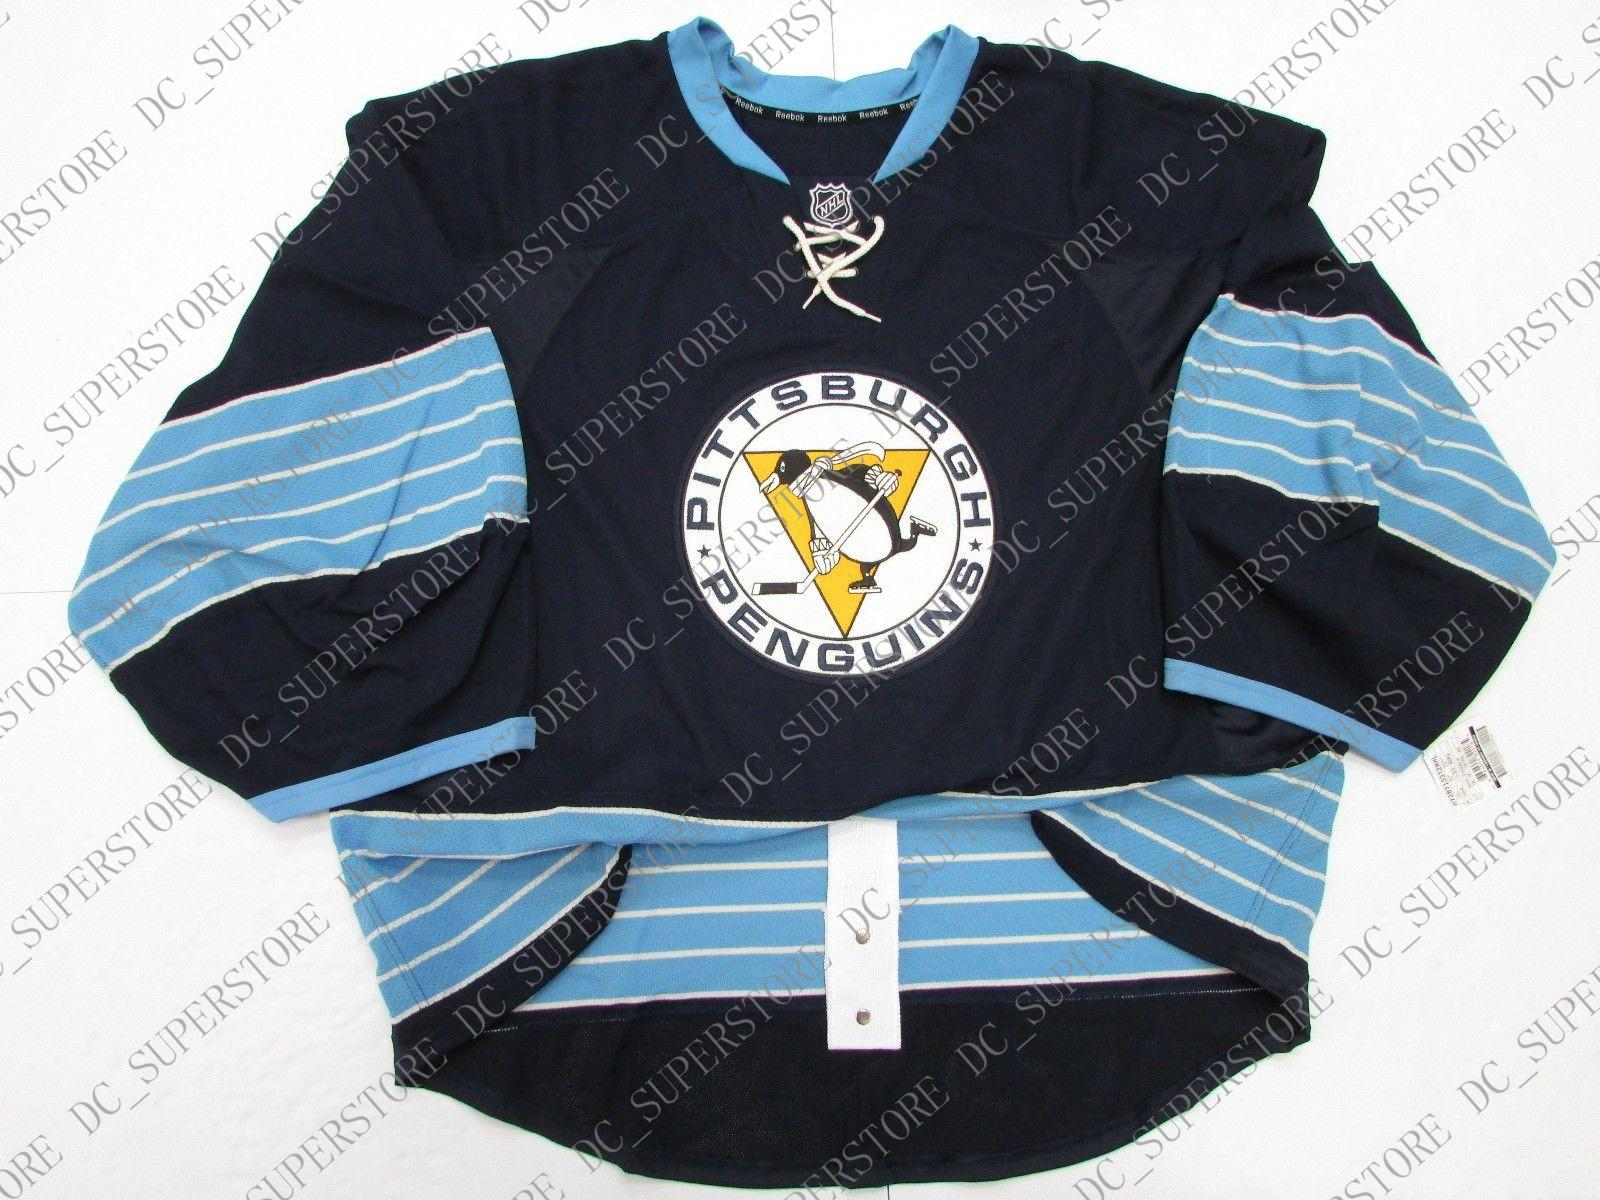 on sale f9fa5 1fc9d Cheap custom PITTSBURGH PENGUINS THIRD JERSEY GOALIE CUT stitch add any  number any name Mens Hockey Jersey